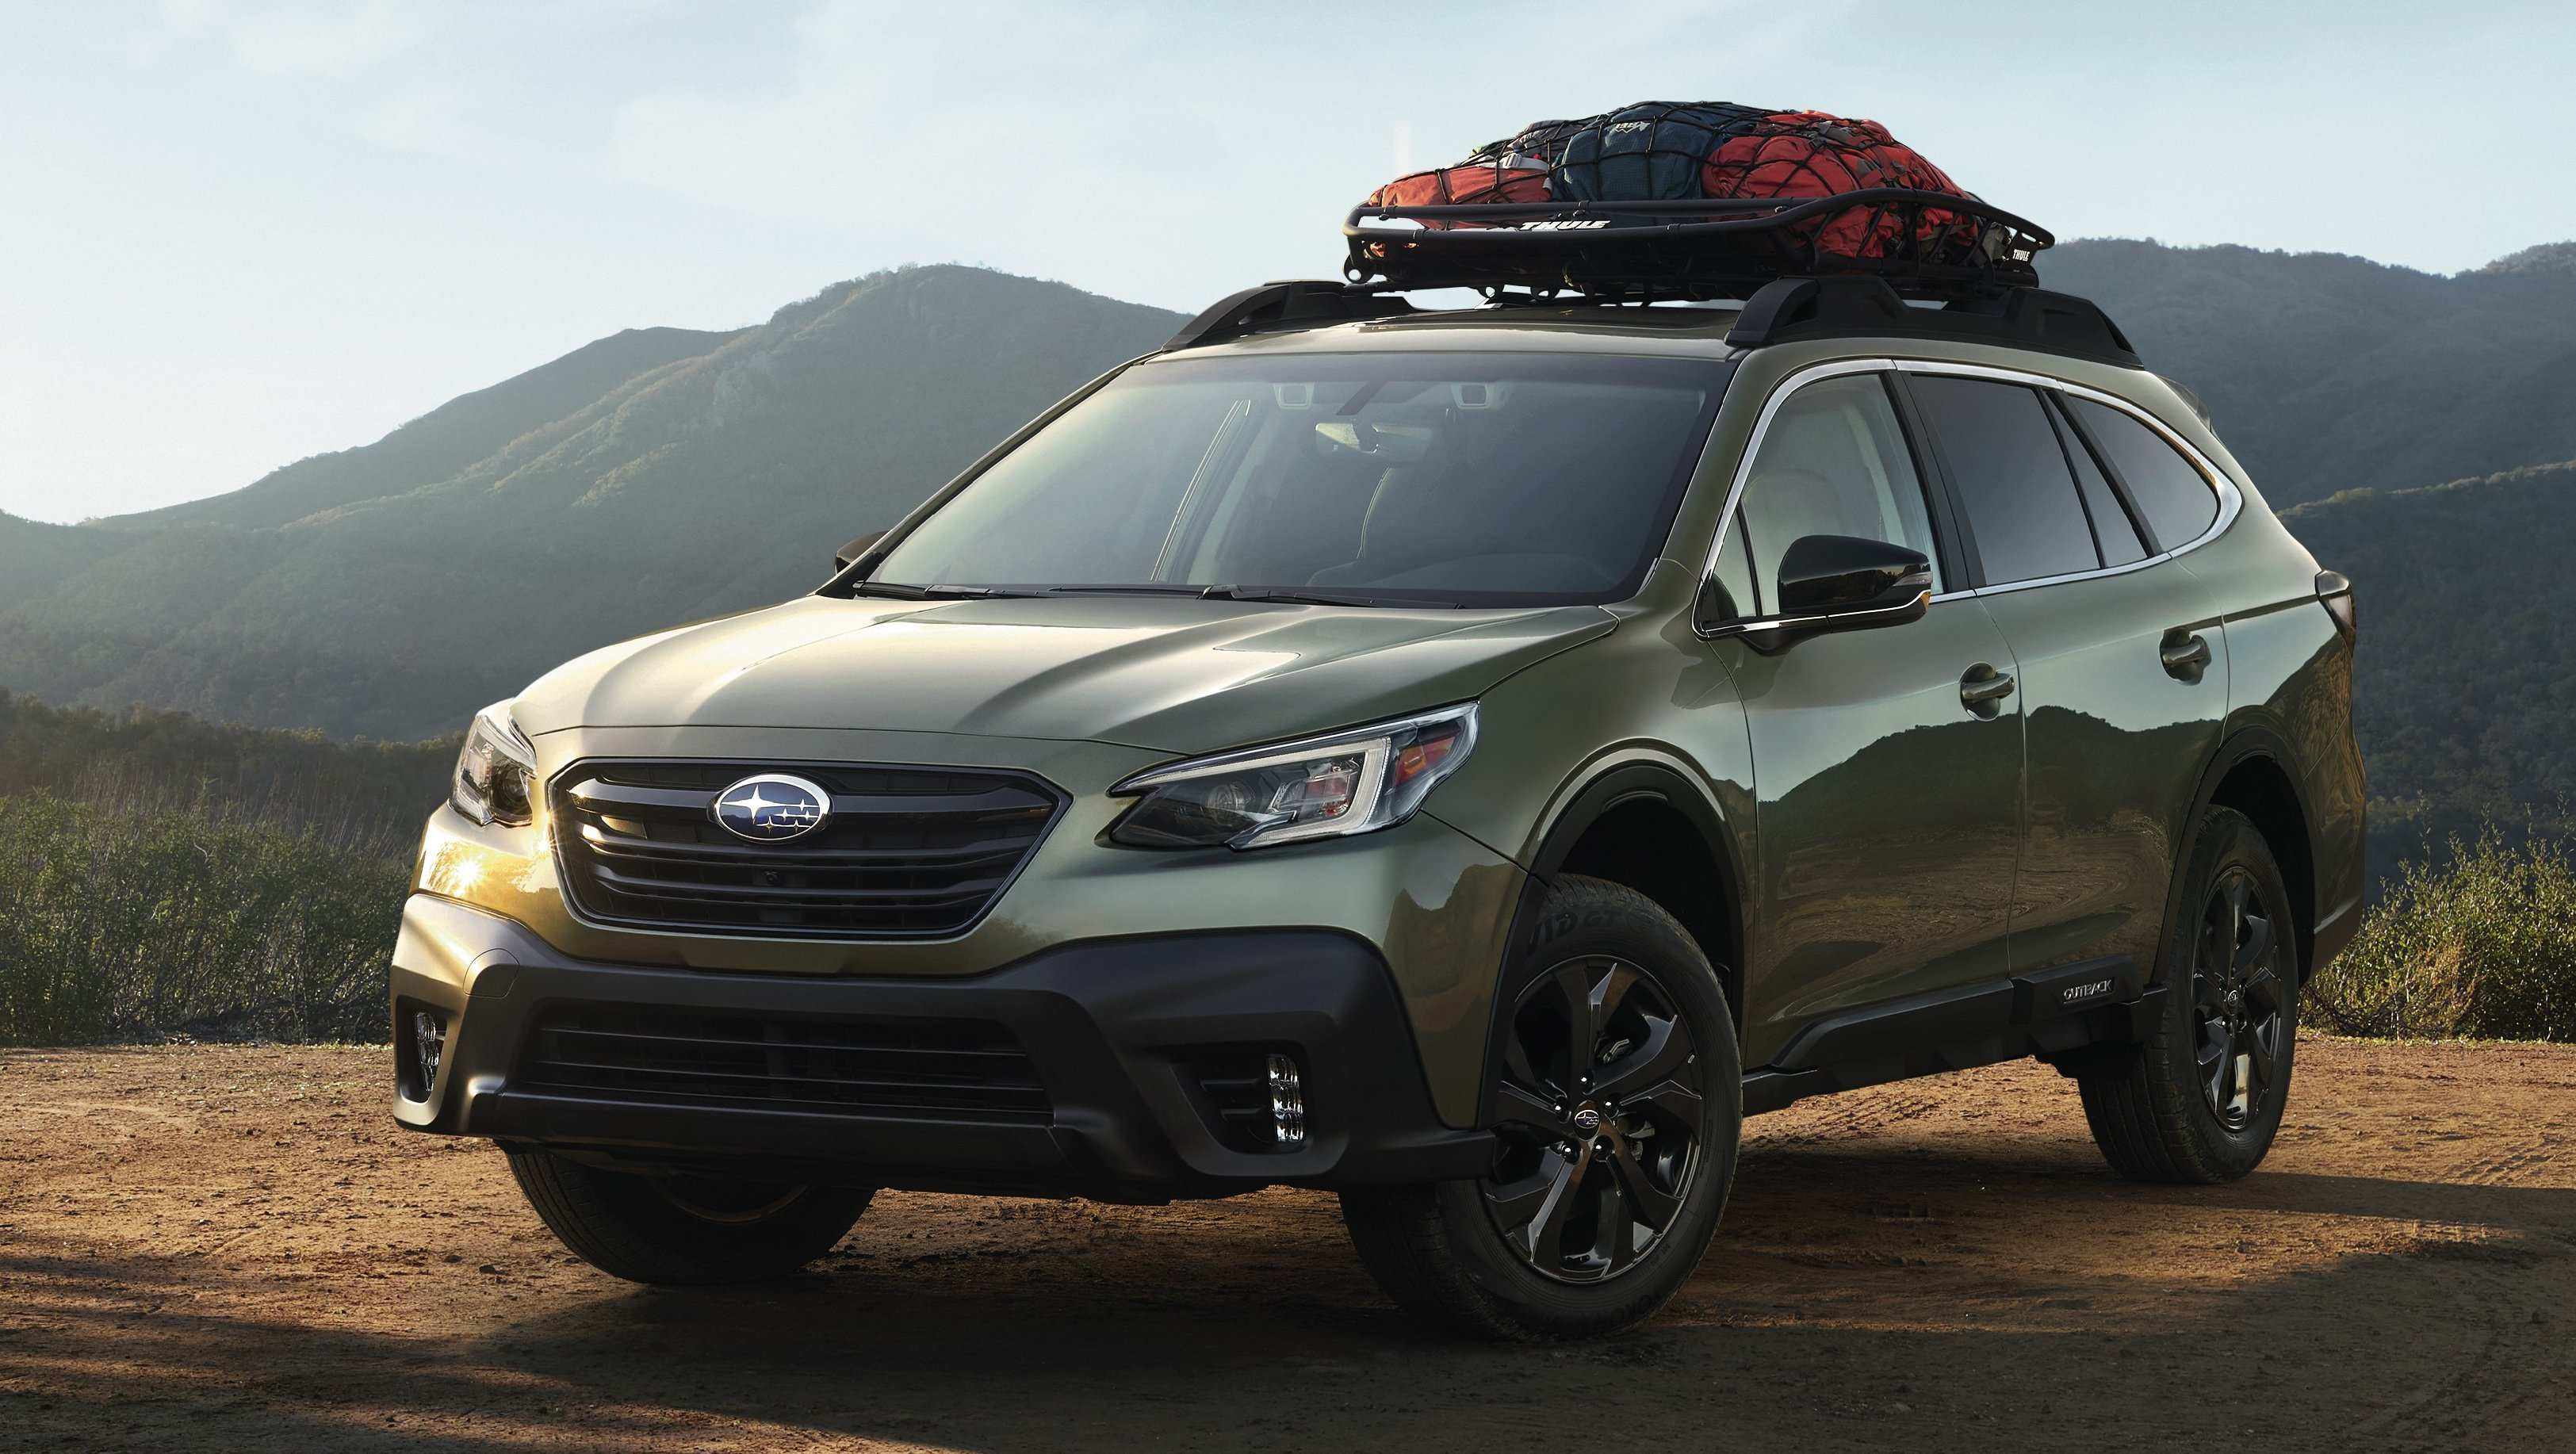 19 New When Does The 2020 Subaru Outback Go On Sale Pictures